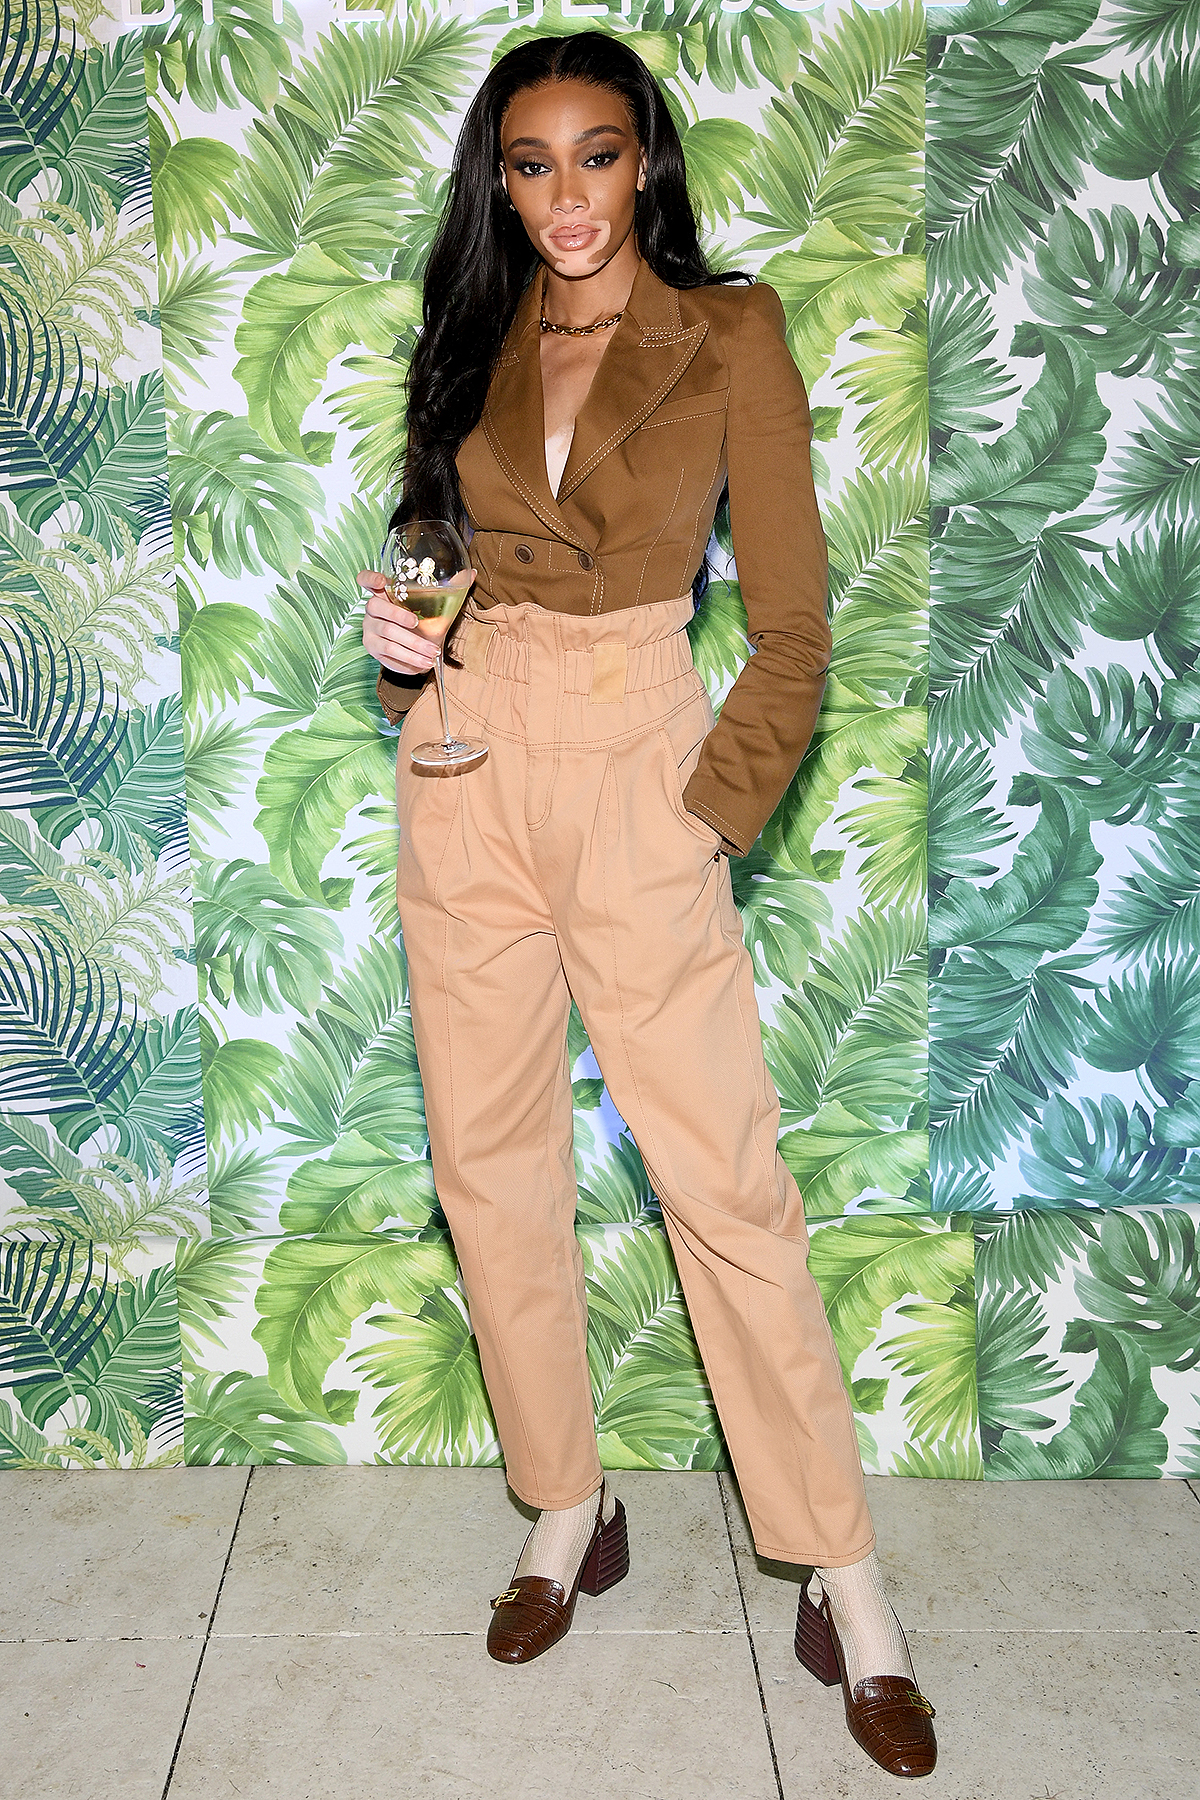 MIAMI BEACH, FLORIDA - DECEMBER 04: Winnie Harlow attends 'A Banquet of Nature by Perrier-Jouët' at Faena Hotel on December 04, 2019 in Miami Beach, Florida. (Photo by Dimitrios Kambouris/Getty Images for Perrier-Jouët )